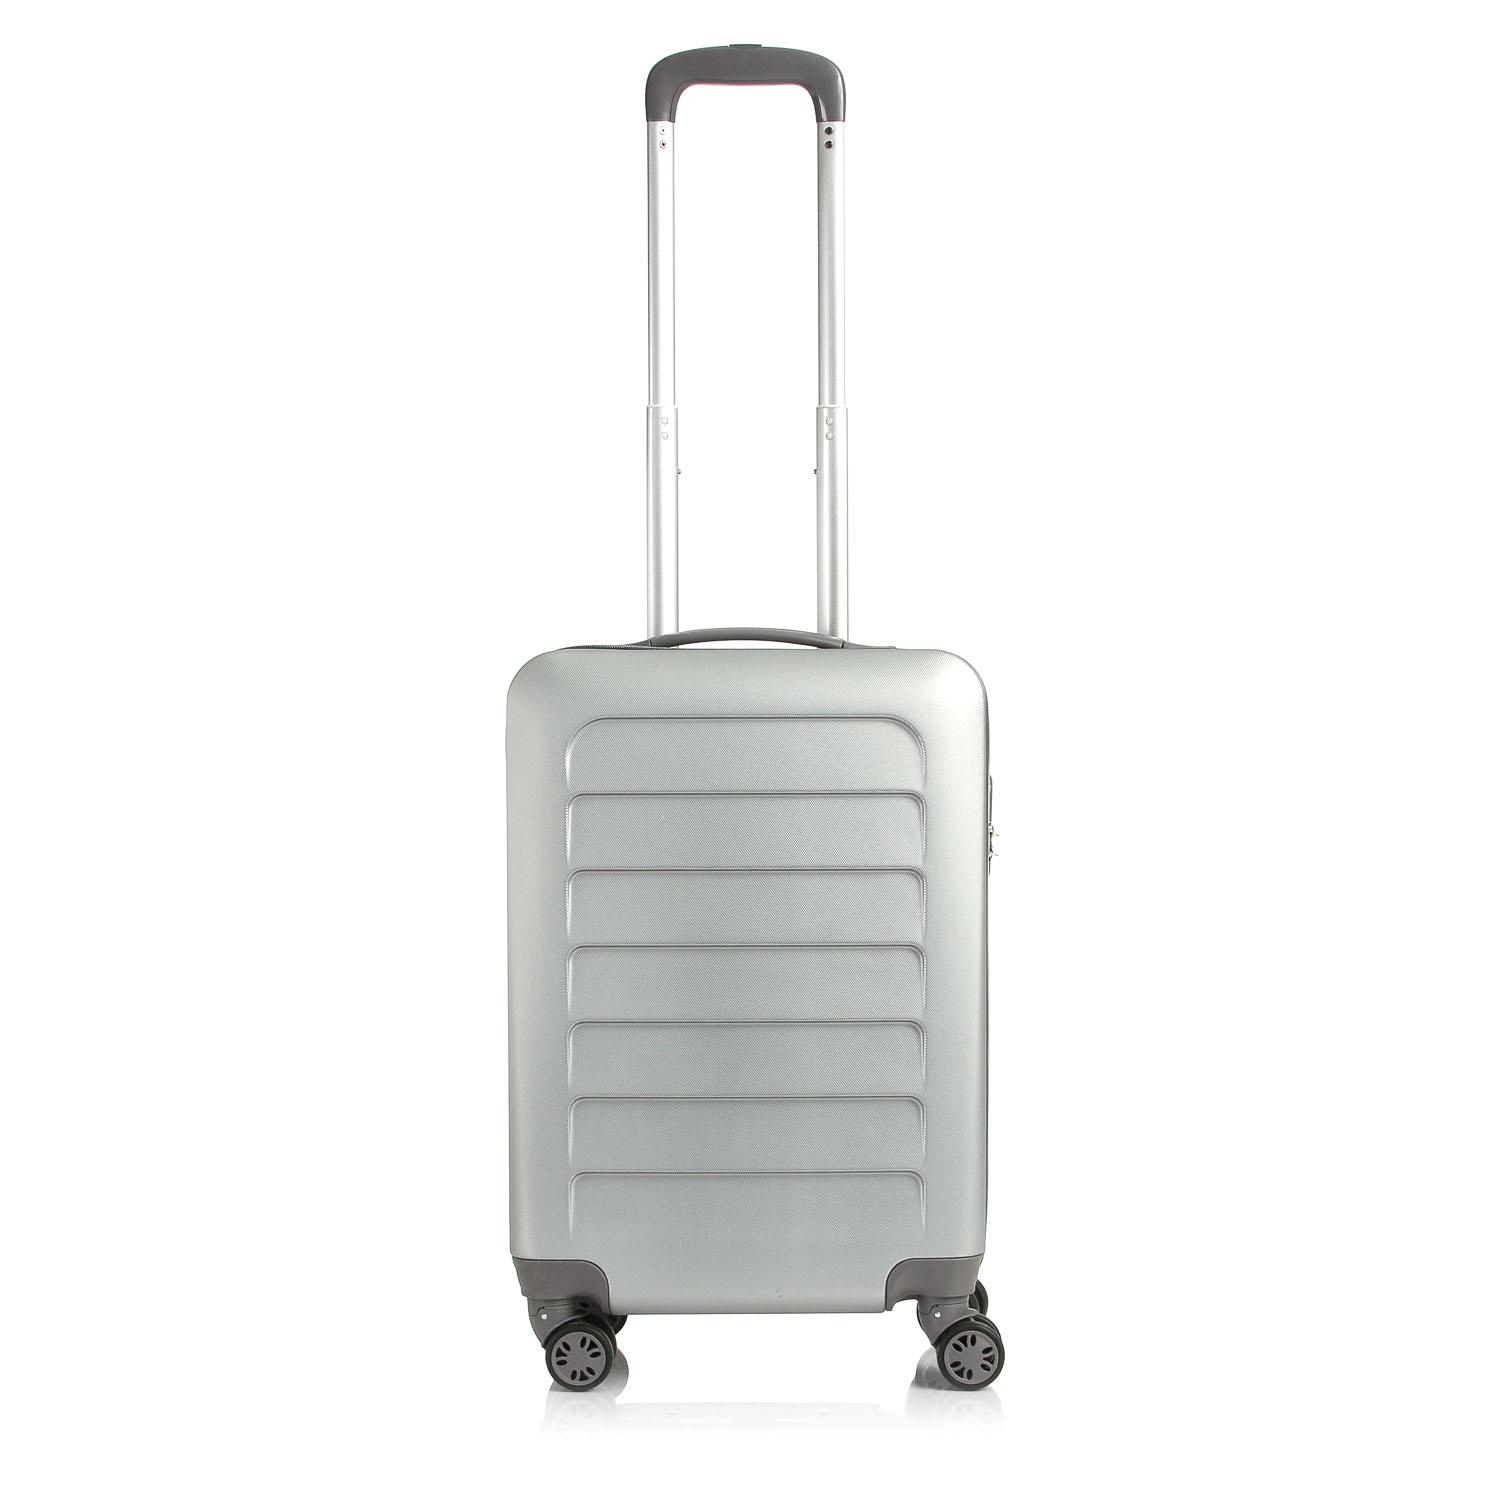 Travel Basic Clare 20-Inch Small Hard Case Luggage (Silver) 389f256d5e5a2